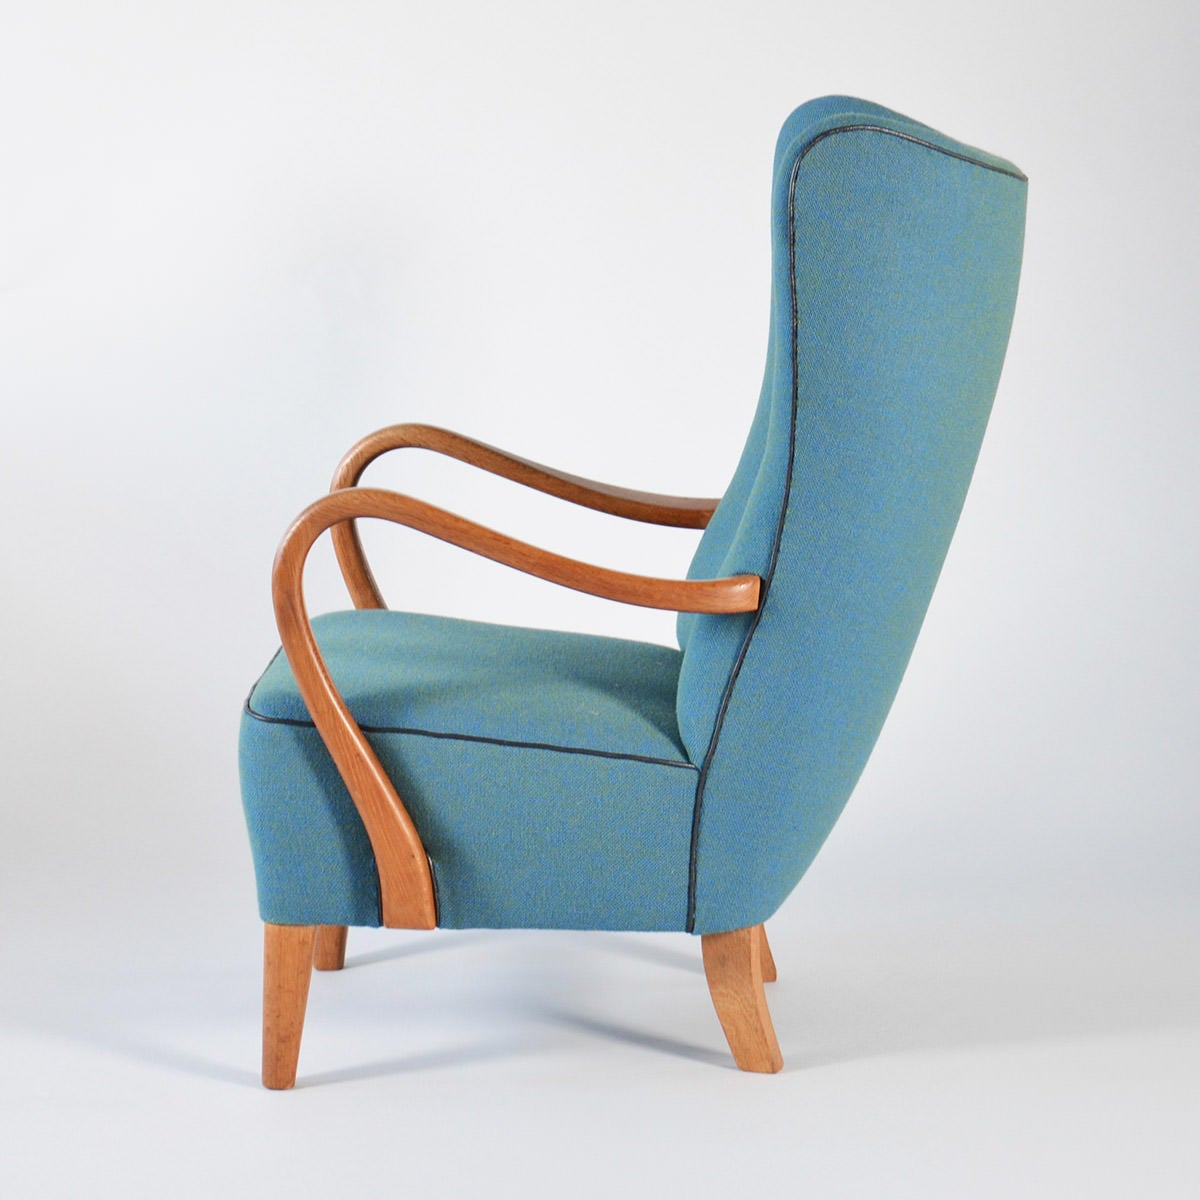 Turquoise armchair 28 images turquoise armchair 28 for Small blue armchair